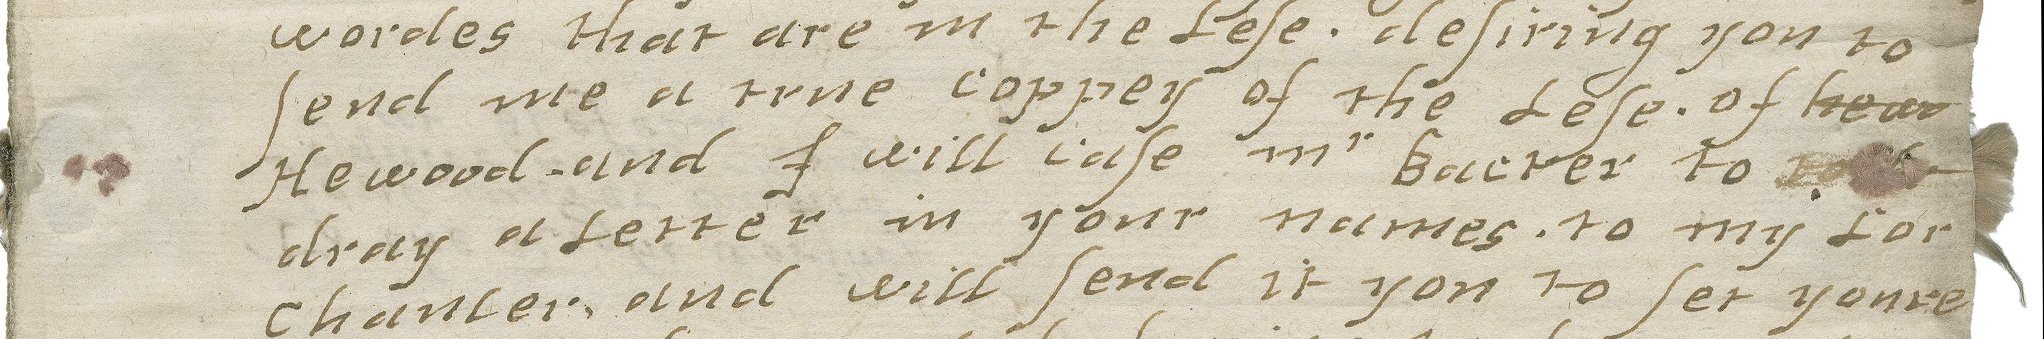 Detail of silk floss threaded through a letter to make it tamper-proof. Folger MS L.a.19. Click image to view entire letter in Folger digital image database.